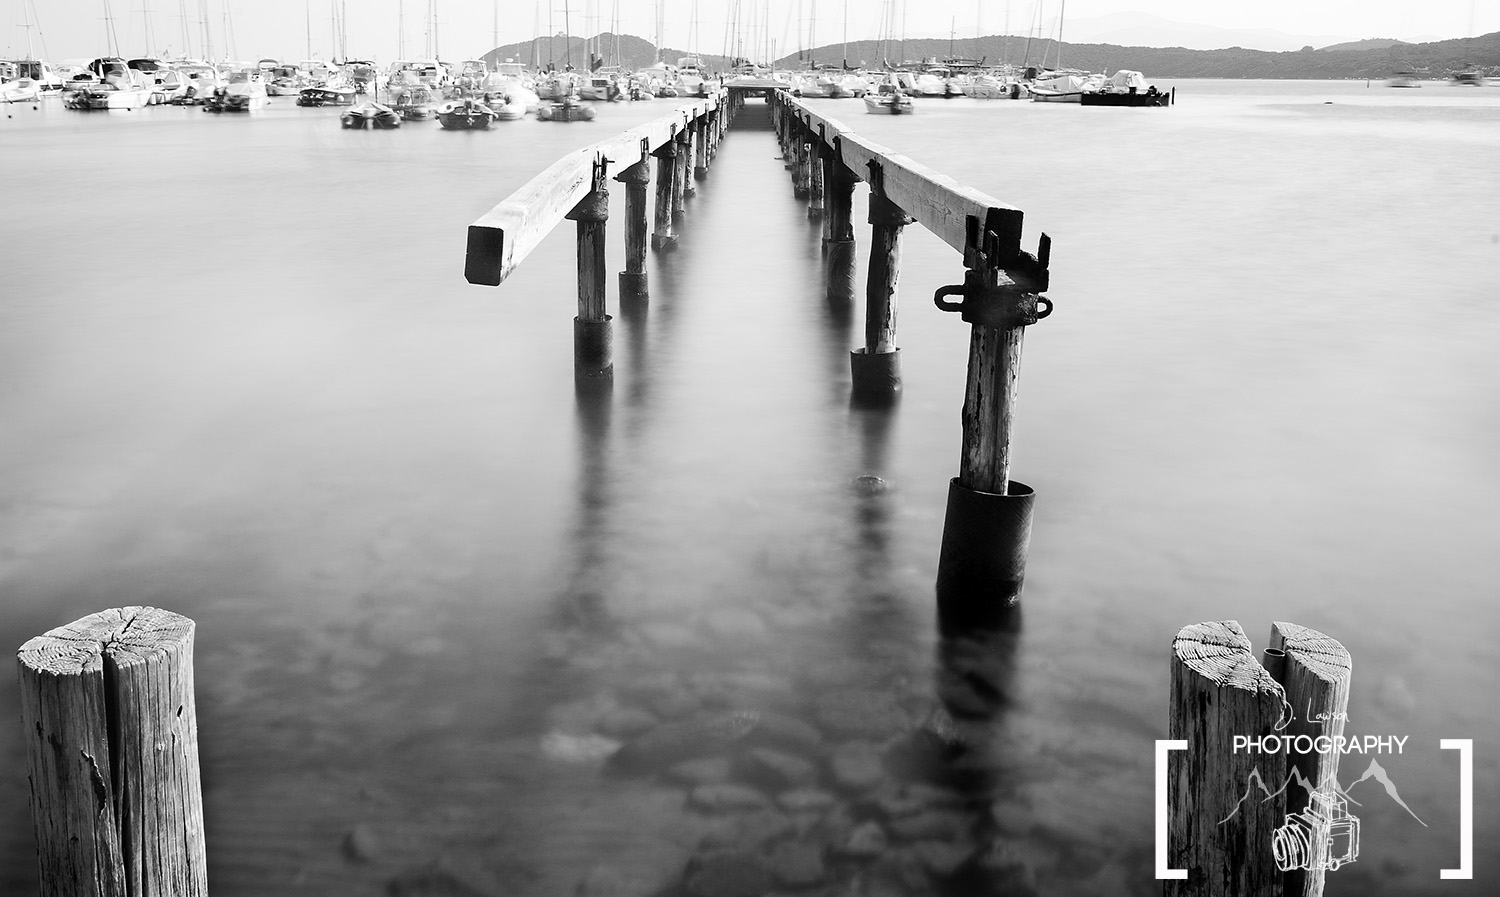 This pier in Italy was shot with a 20 second exposure using the Lee Big Stopper filter, picture by Jared Lawson Photography